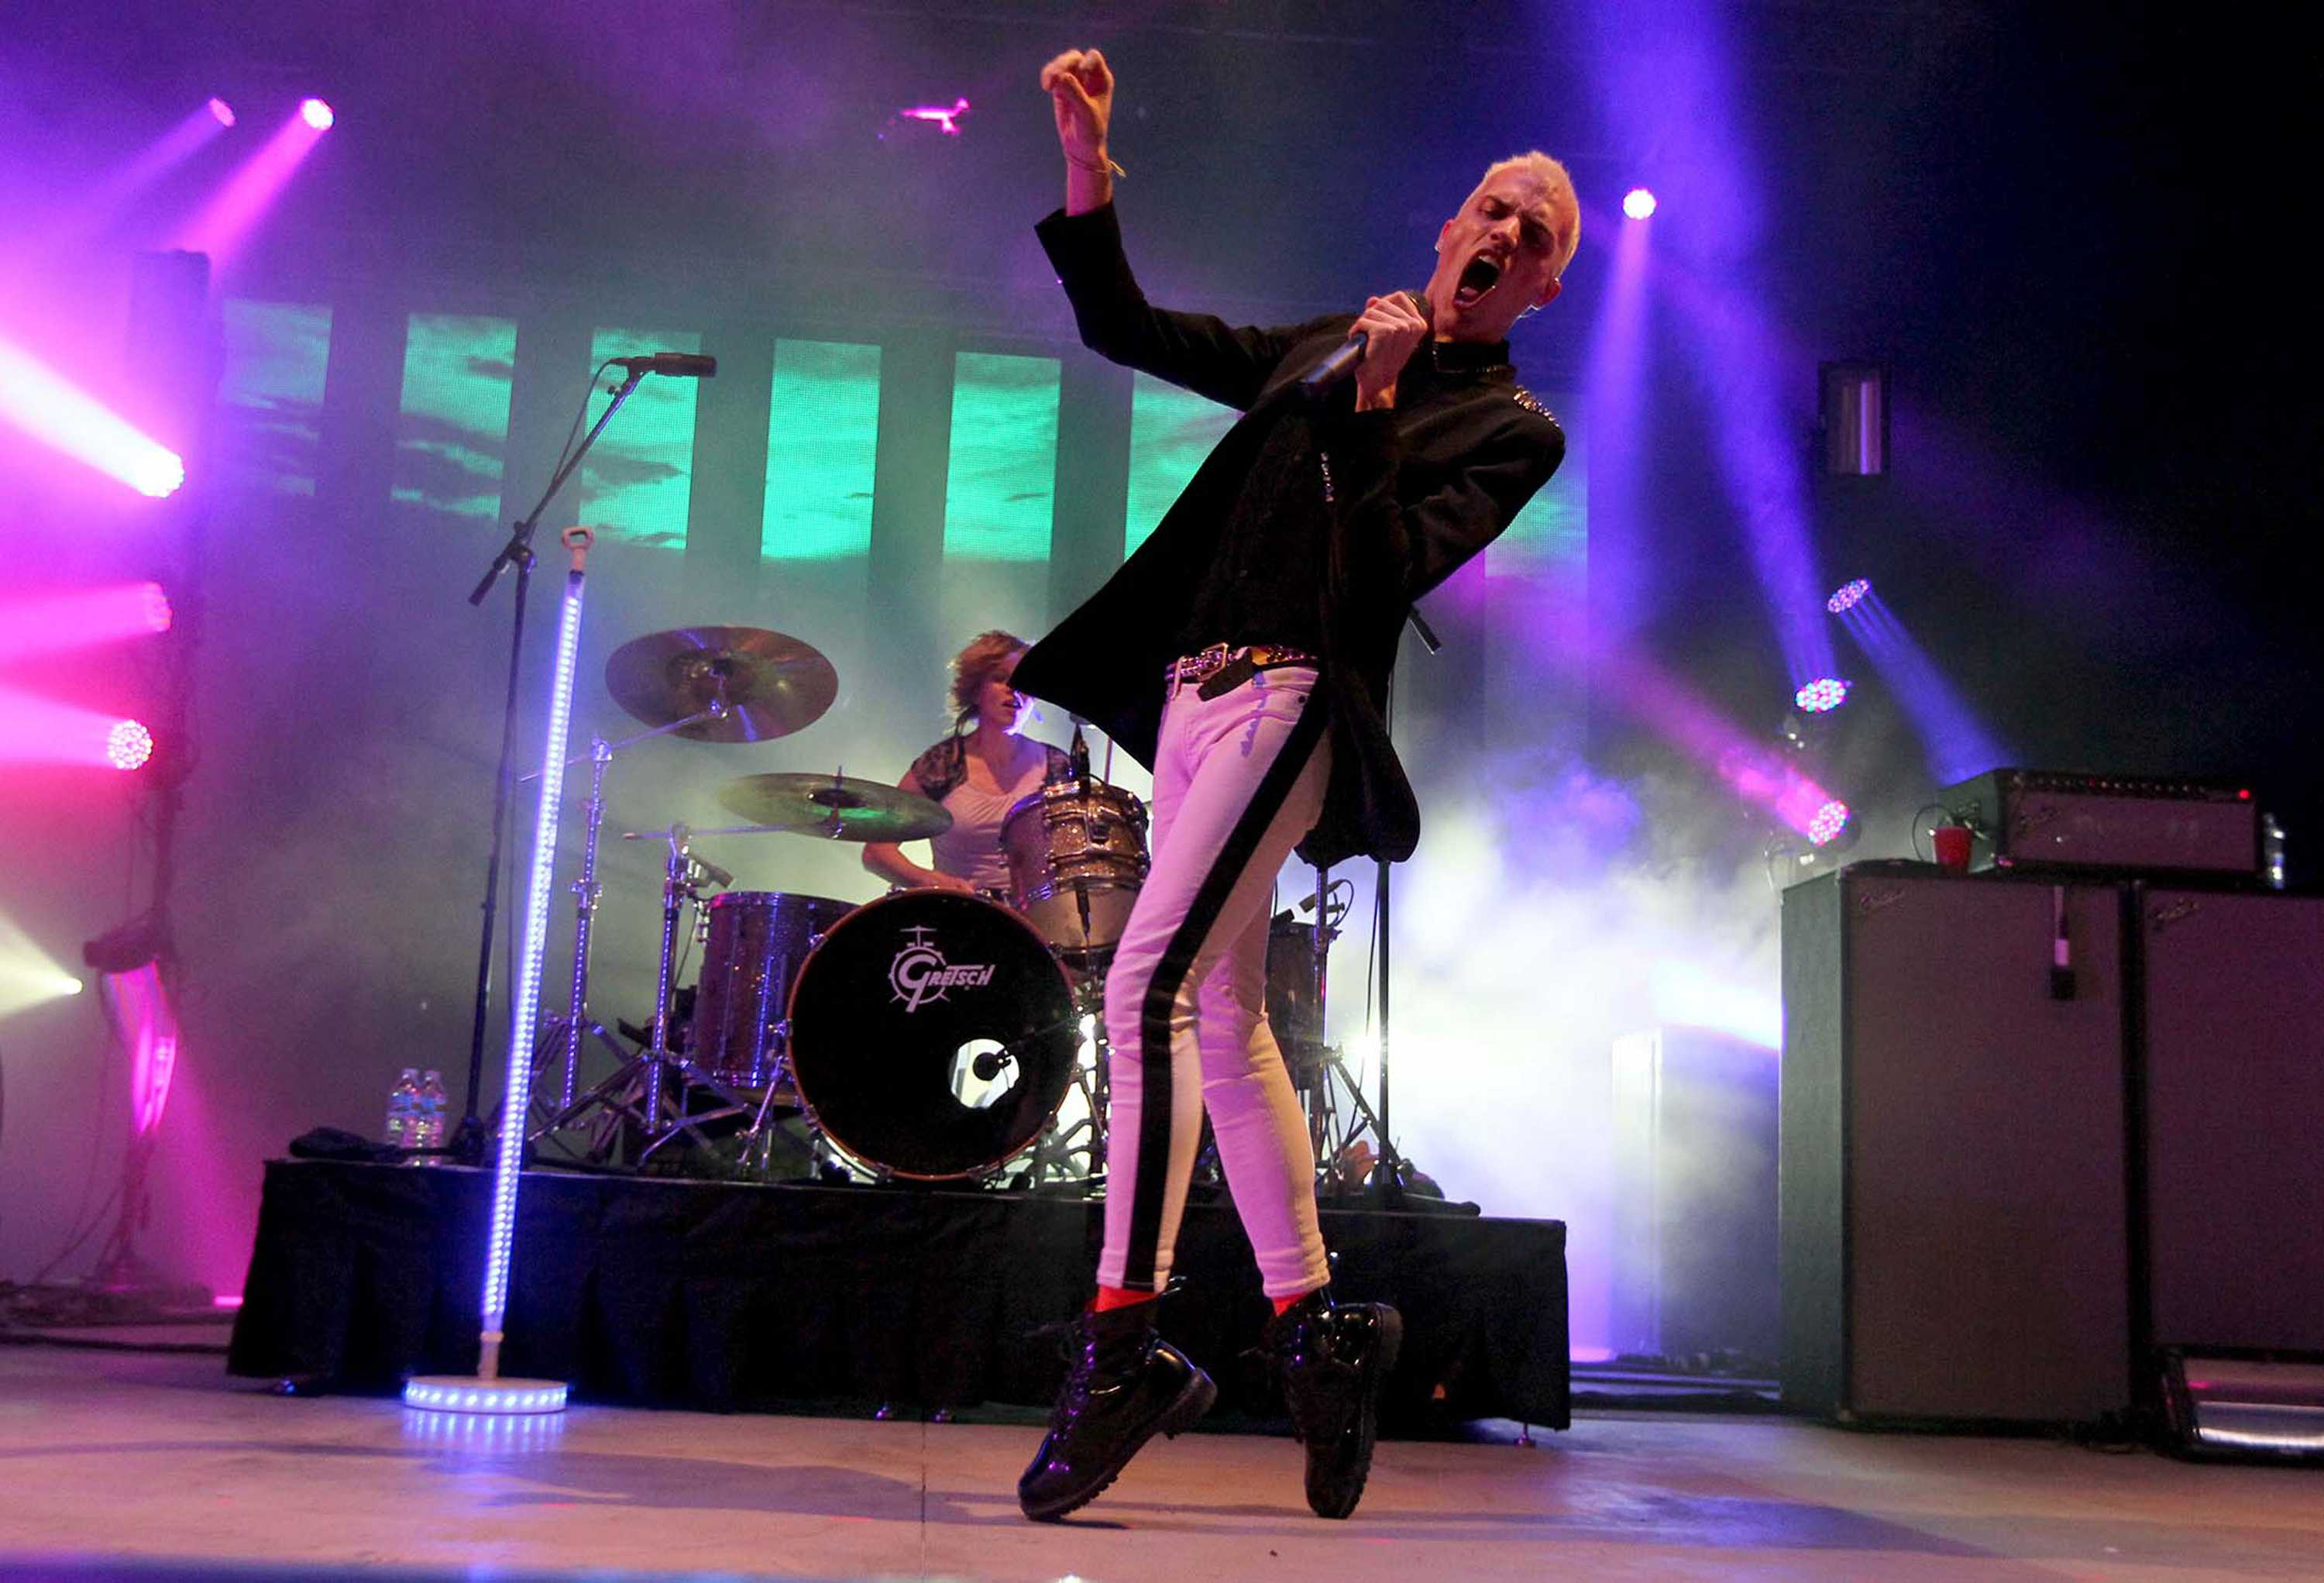 Neon+Trees+performs+a+concert+sponsored+by+Rock+the+Vote%2C+at+Mizner+Park+in+Boca+Raton%2C+Florida+on+Monday%2C+October+22%2C+2012.+Photo+courtesy+of+MCT